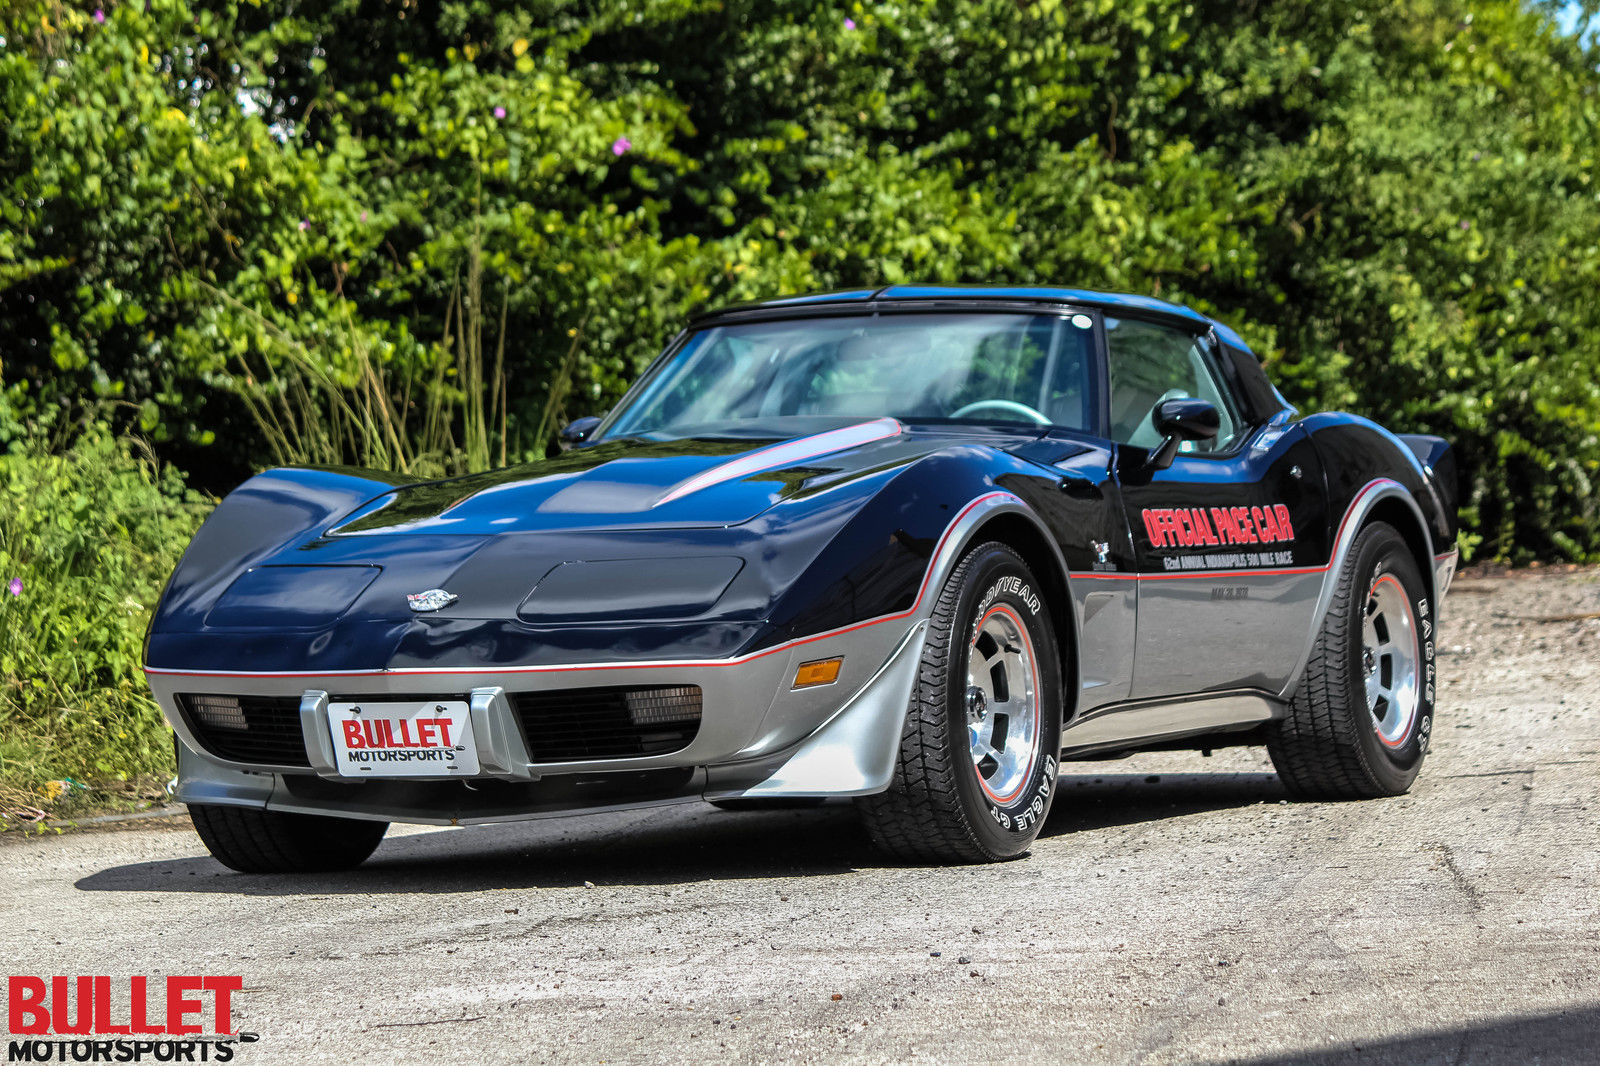 1978 Chevrolet Corvette Pace Car Edition Numbers Matching